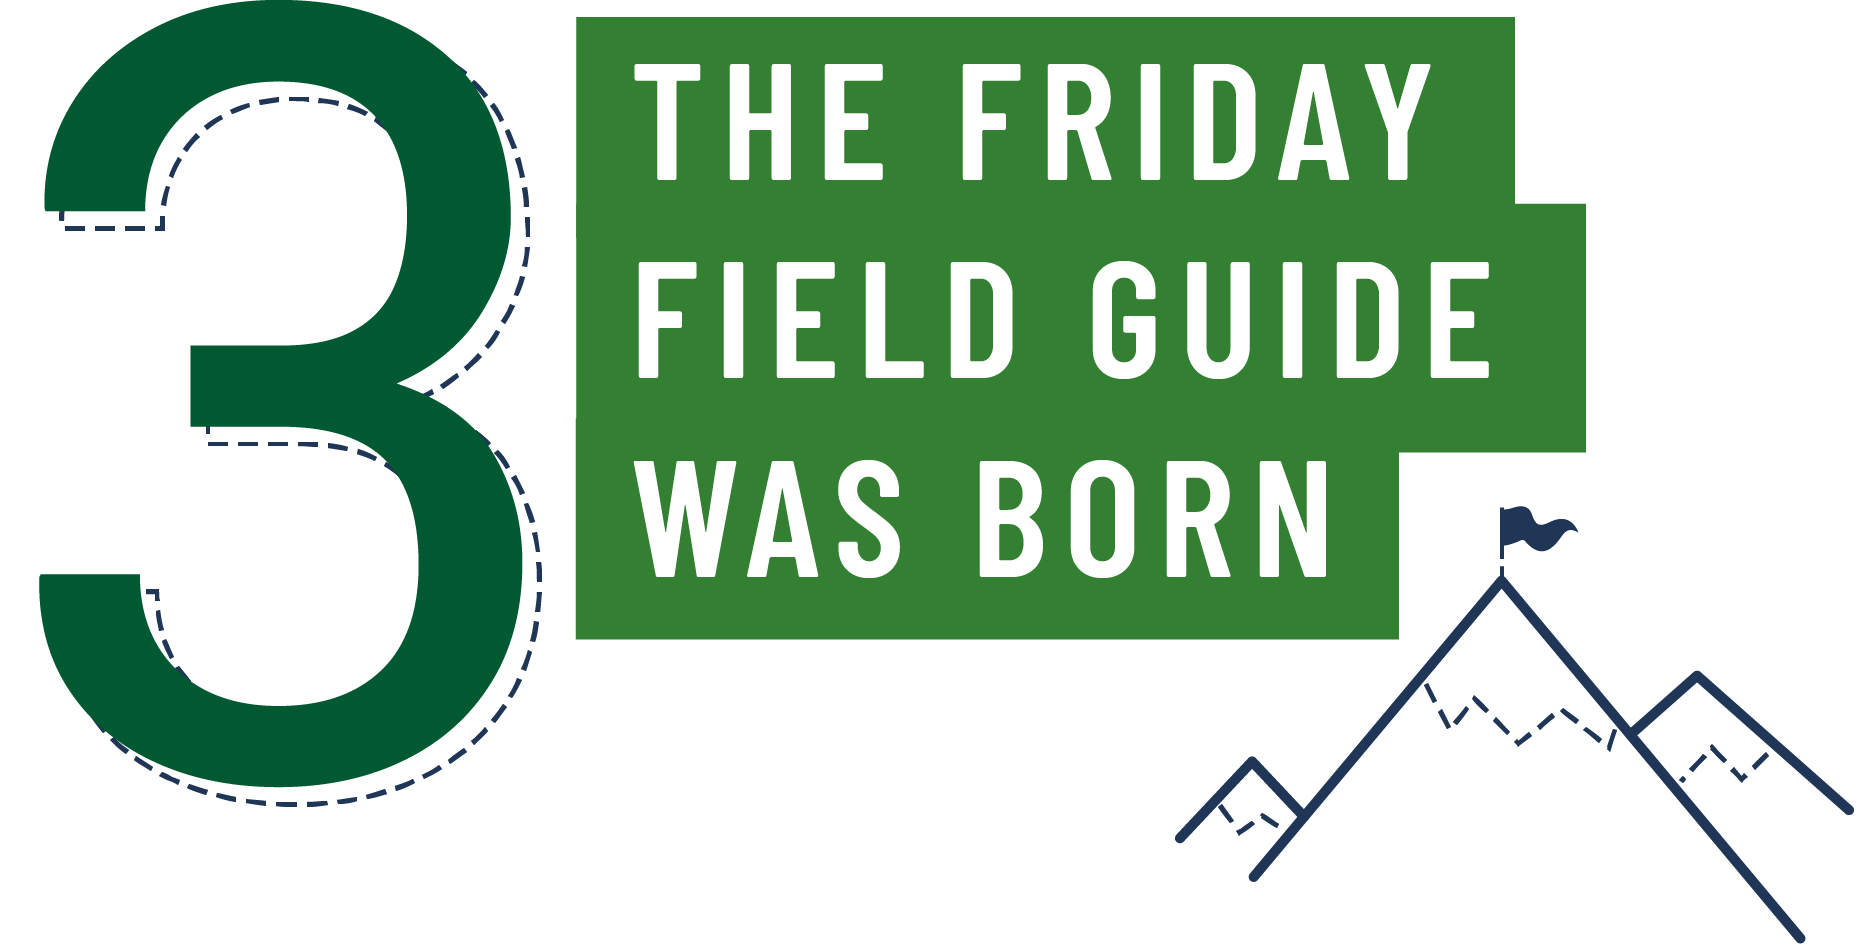 3. The Friday Field Guide was born